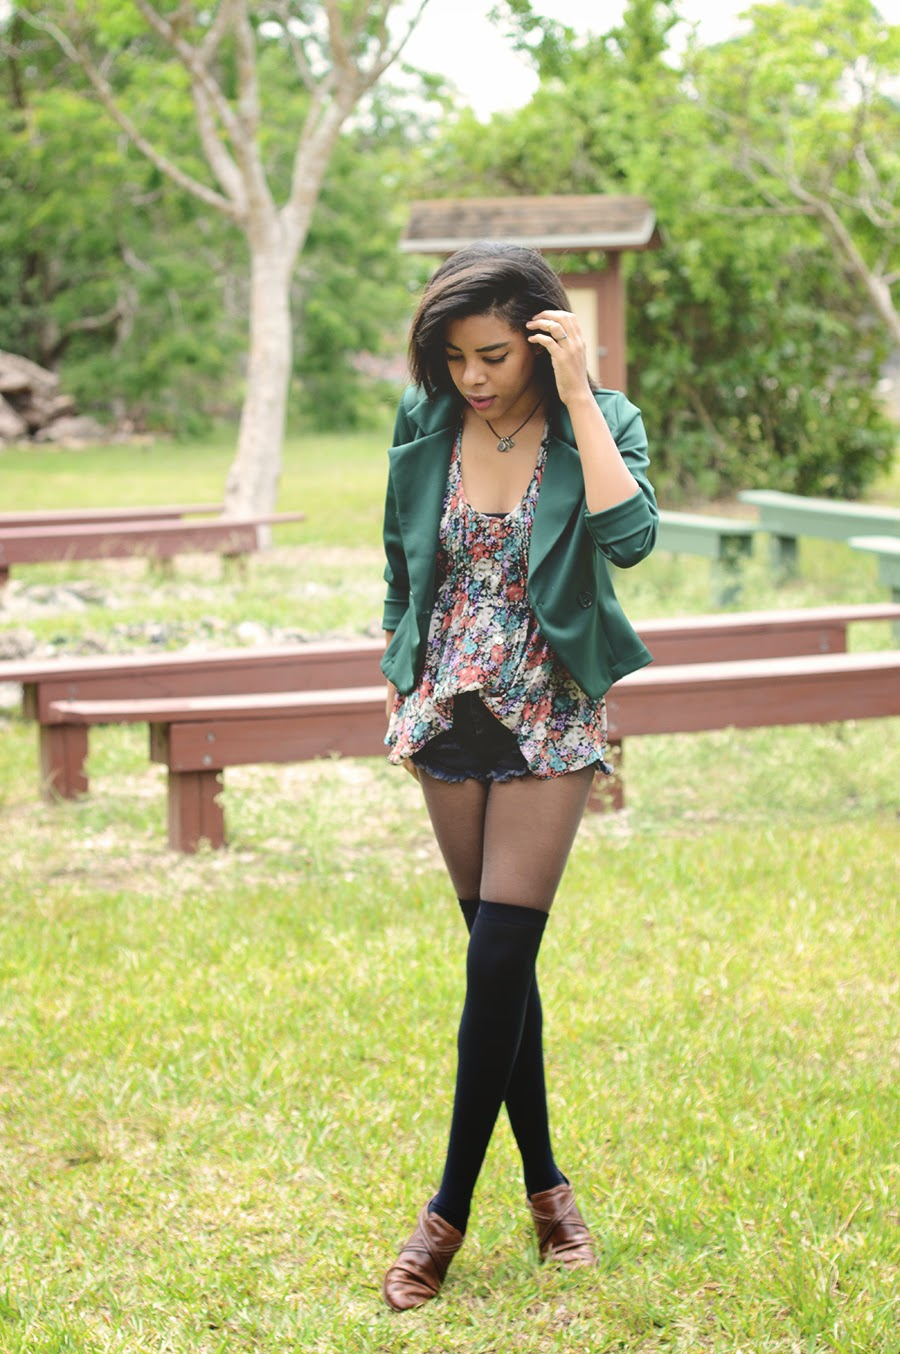 Nature Girl Indie Fashion Blogger Anais Alexandre of Down to Stars in a paisley floral top by american rag with emerald blazer from love culture and vintage leather shoes